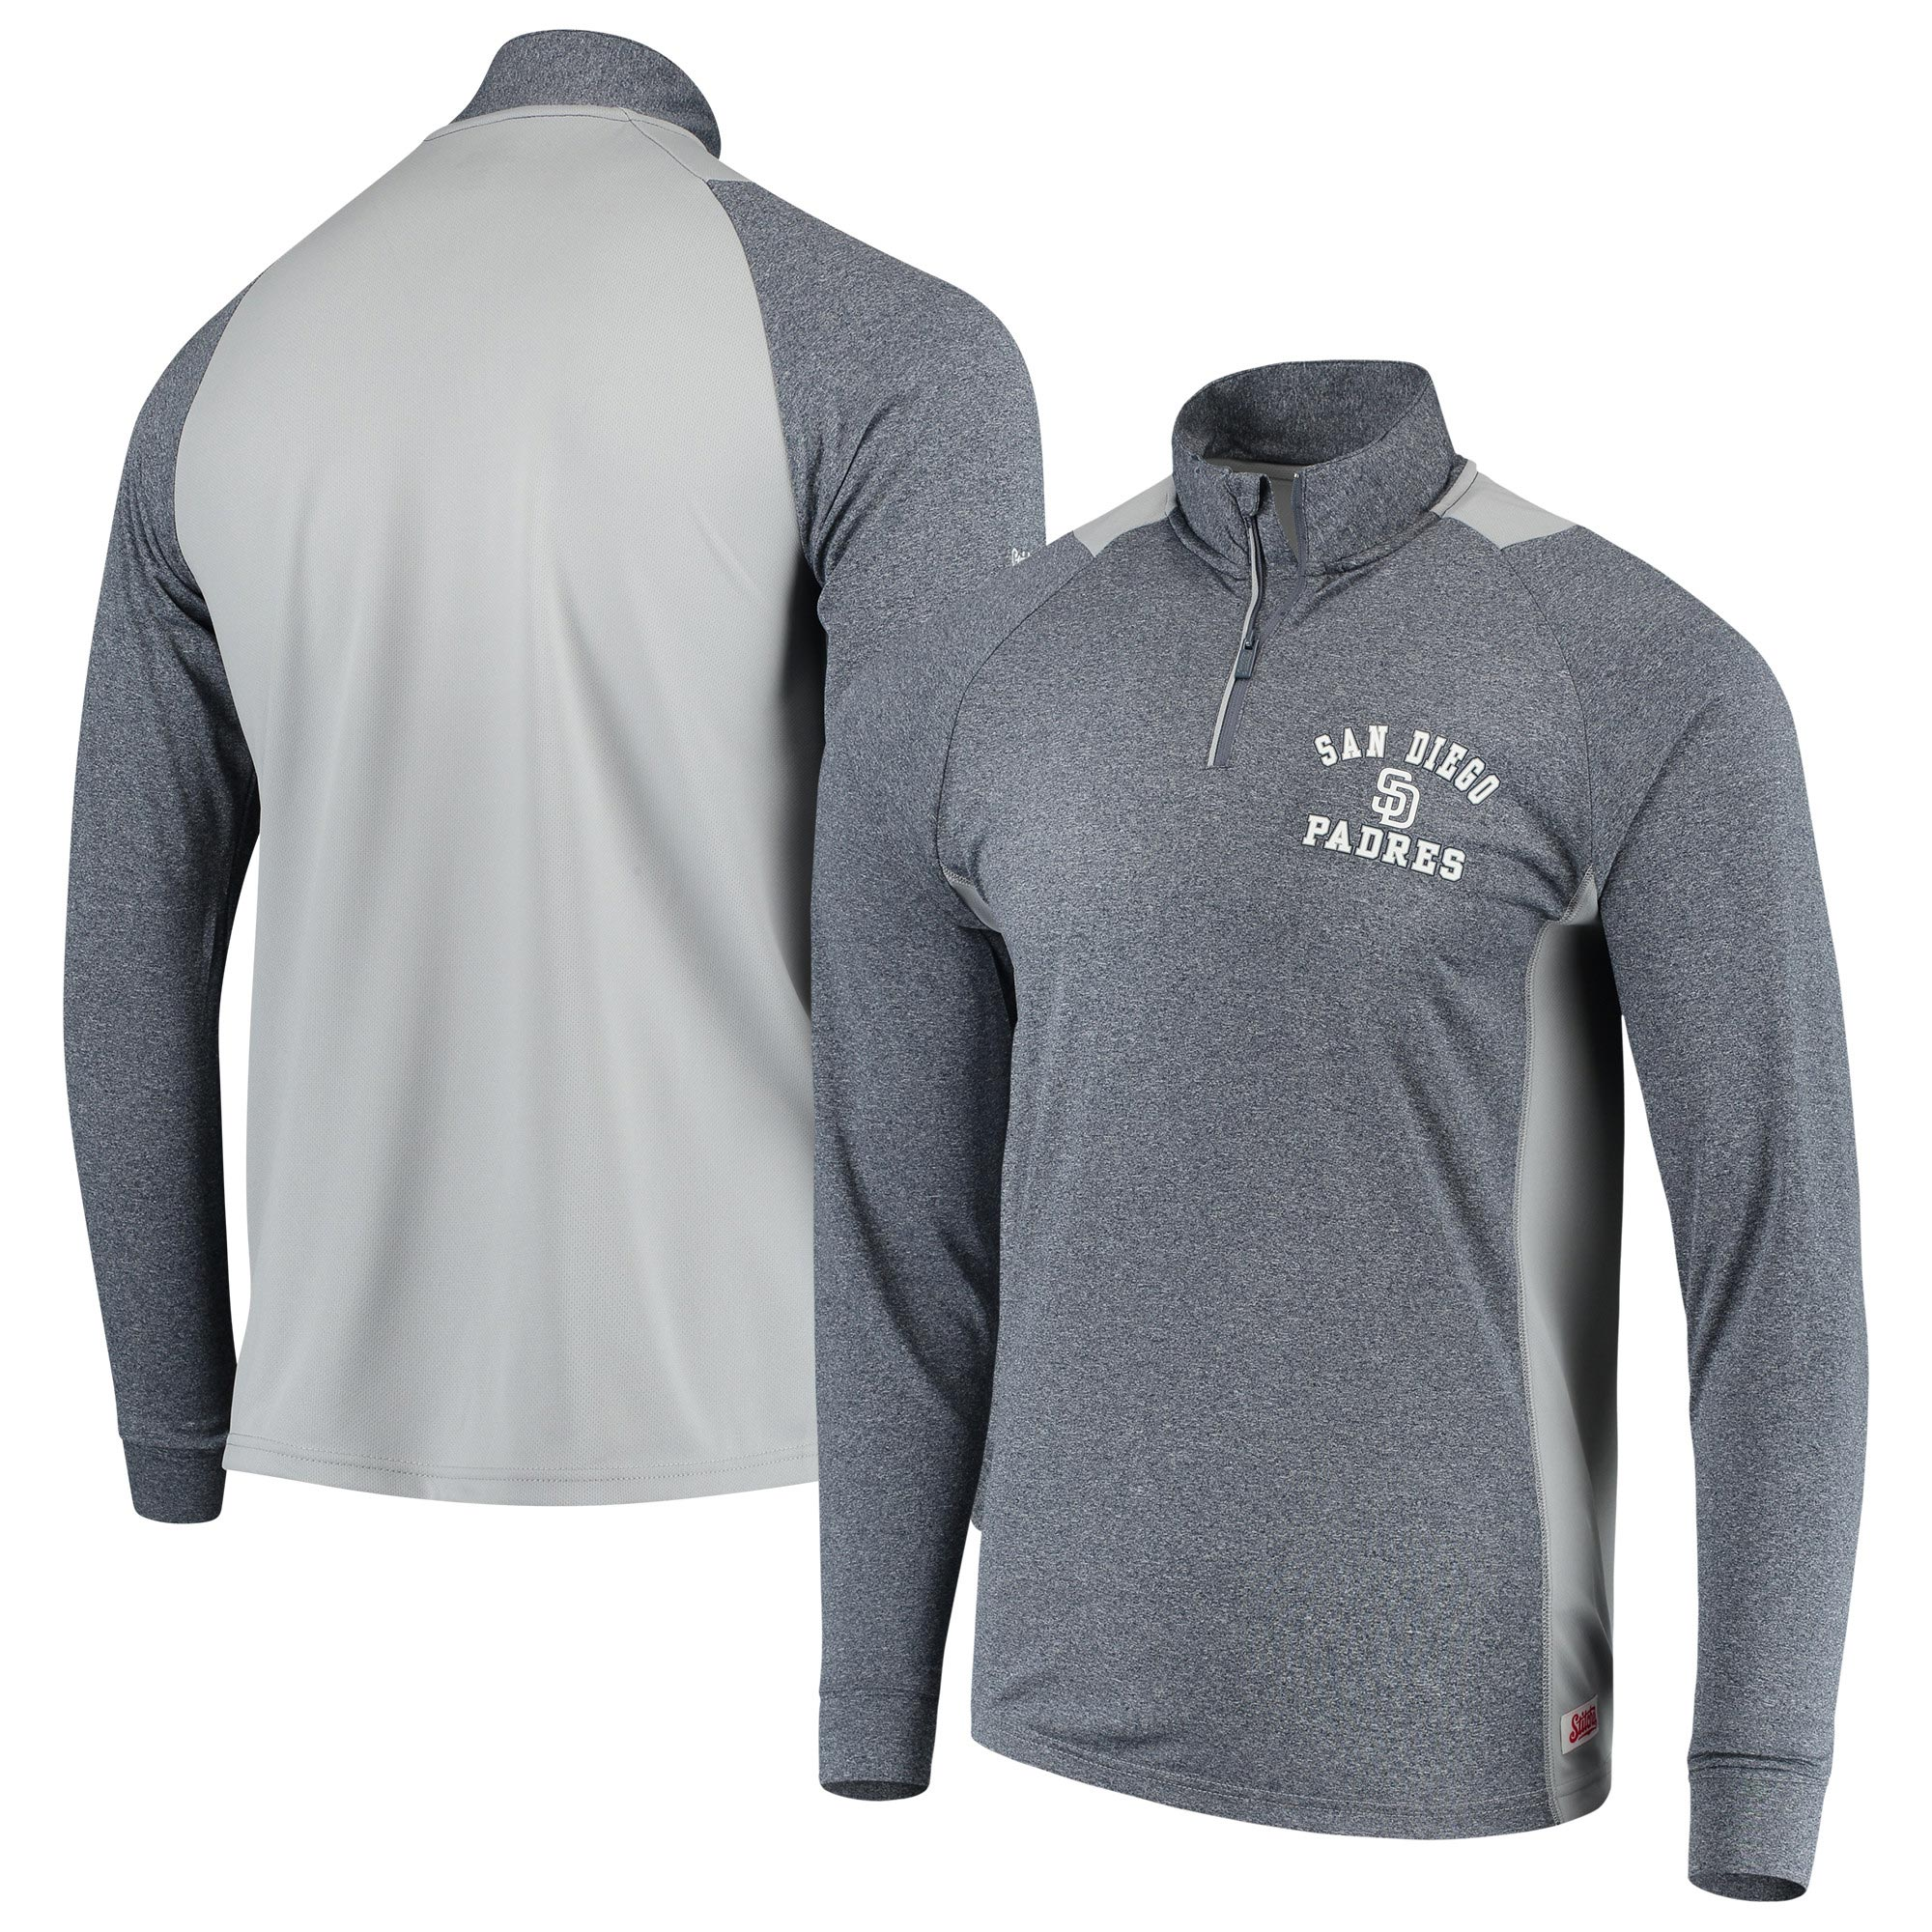 San Diego Padres Stitches Raglan Sleeve Quarter-Zip Pullover Jacket - Heathered Navy/Gray